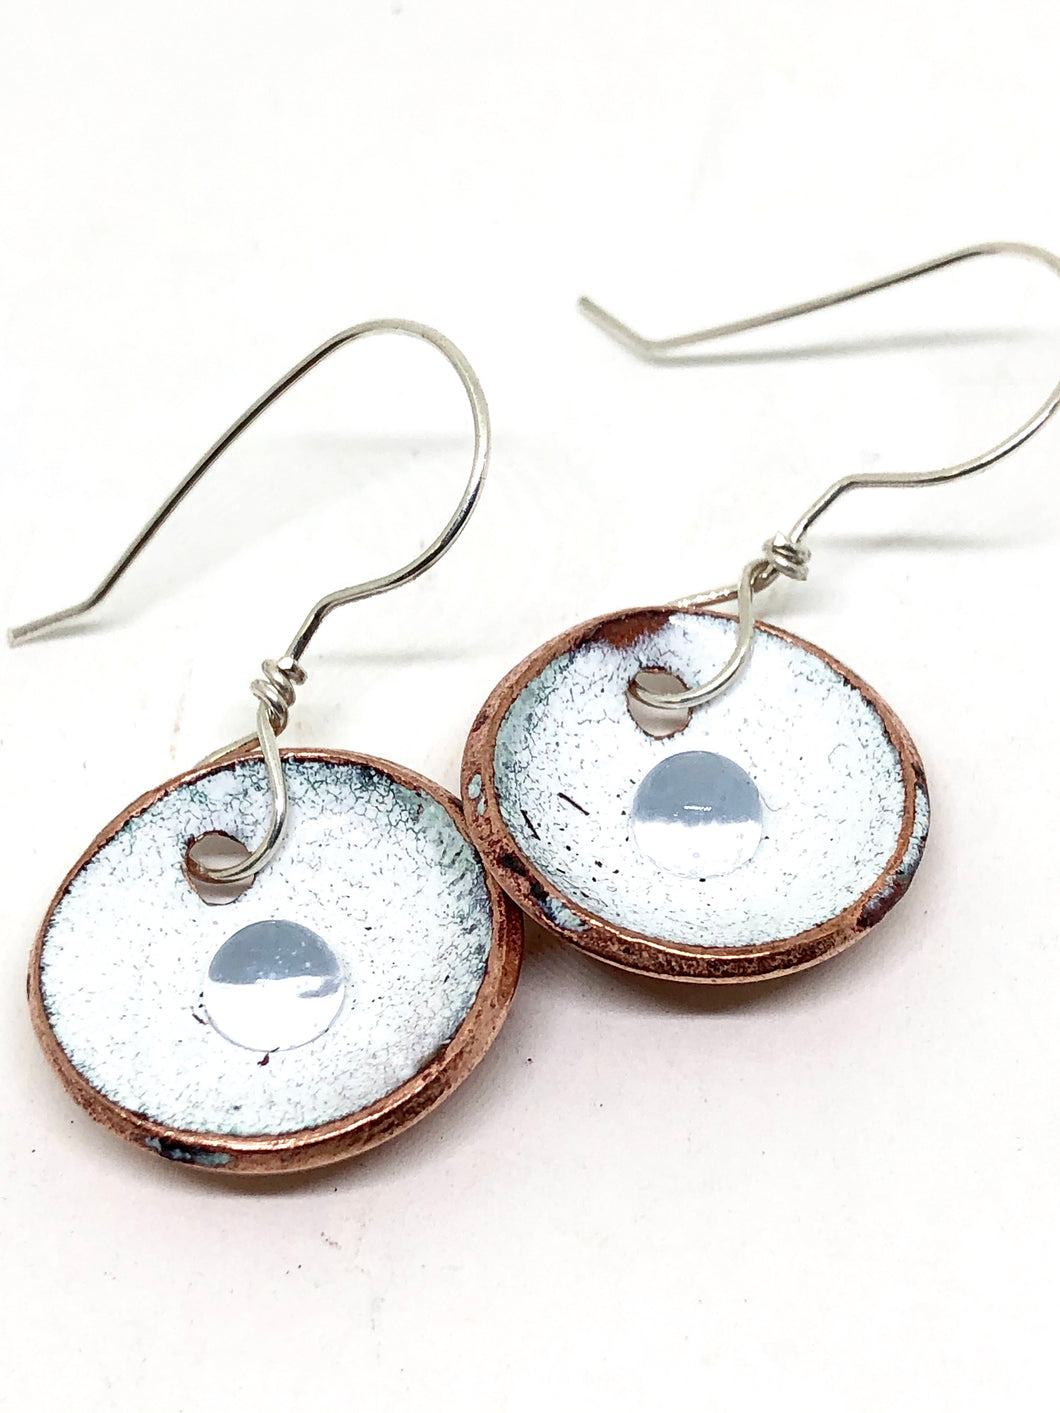 Snowflake White with Microbead Penny Earrings